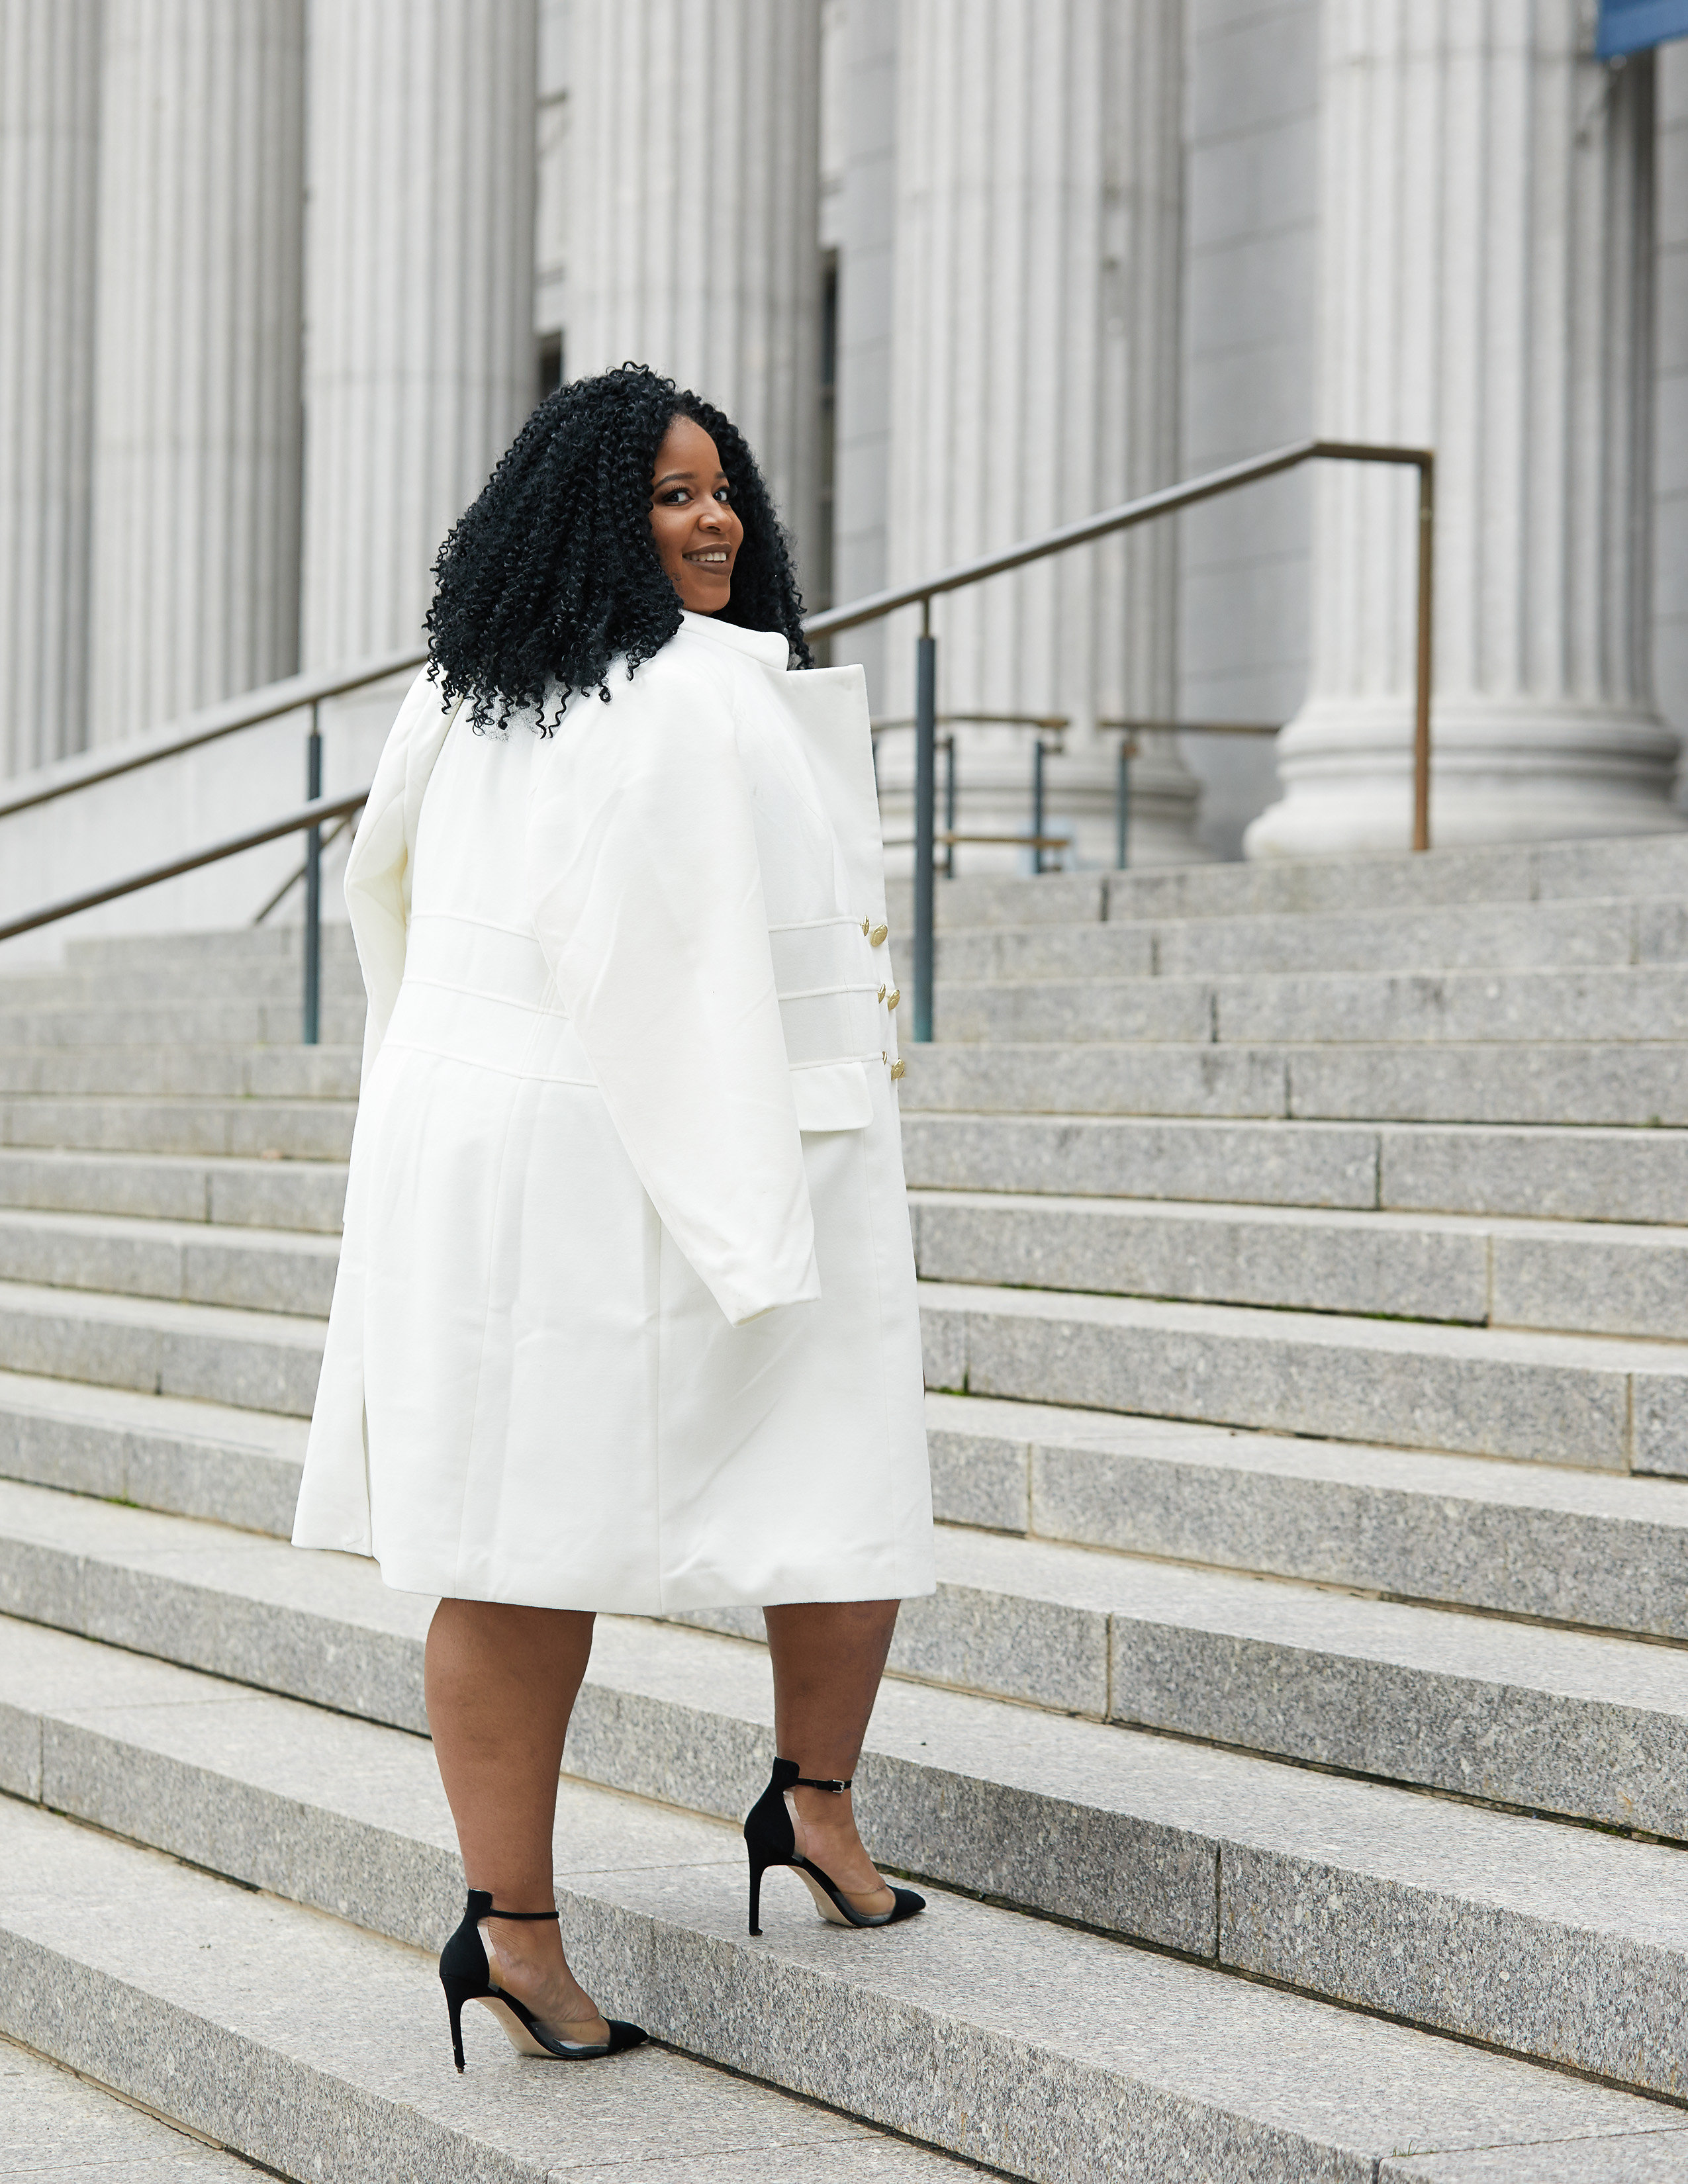 924a2c99c1a ... Plus Size Blogger Wearing Plus Size Peacoat from Scandal